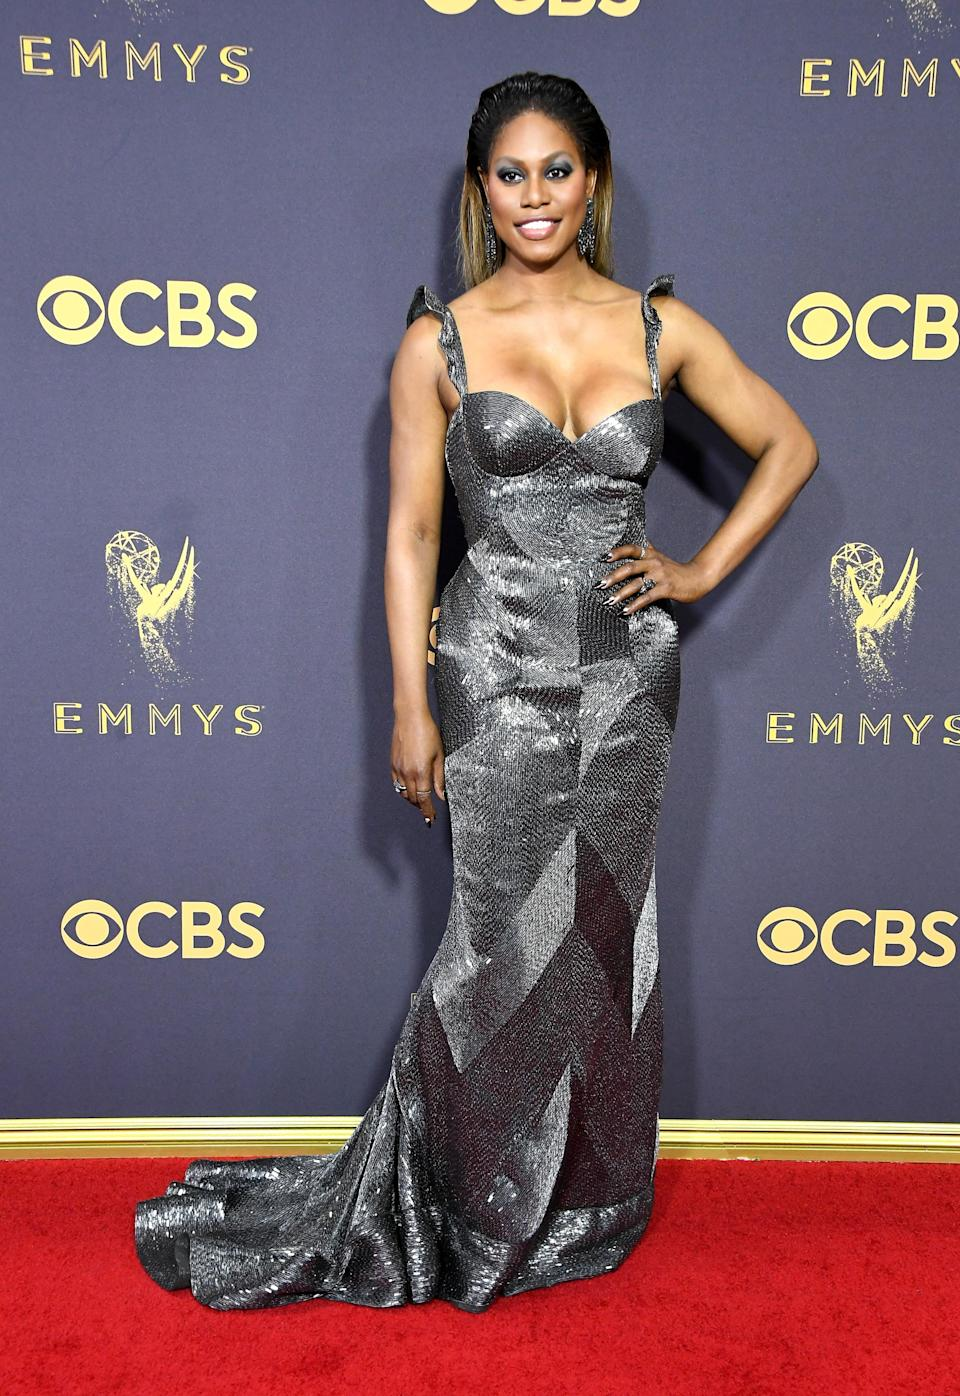 <p>Laverne Cox attends the 69th Primetime Emmy Awards at Microsoft Theater on Sept. 17, 2017, in Los Angeles. (Photo: Getty Images) </p>